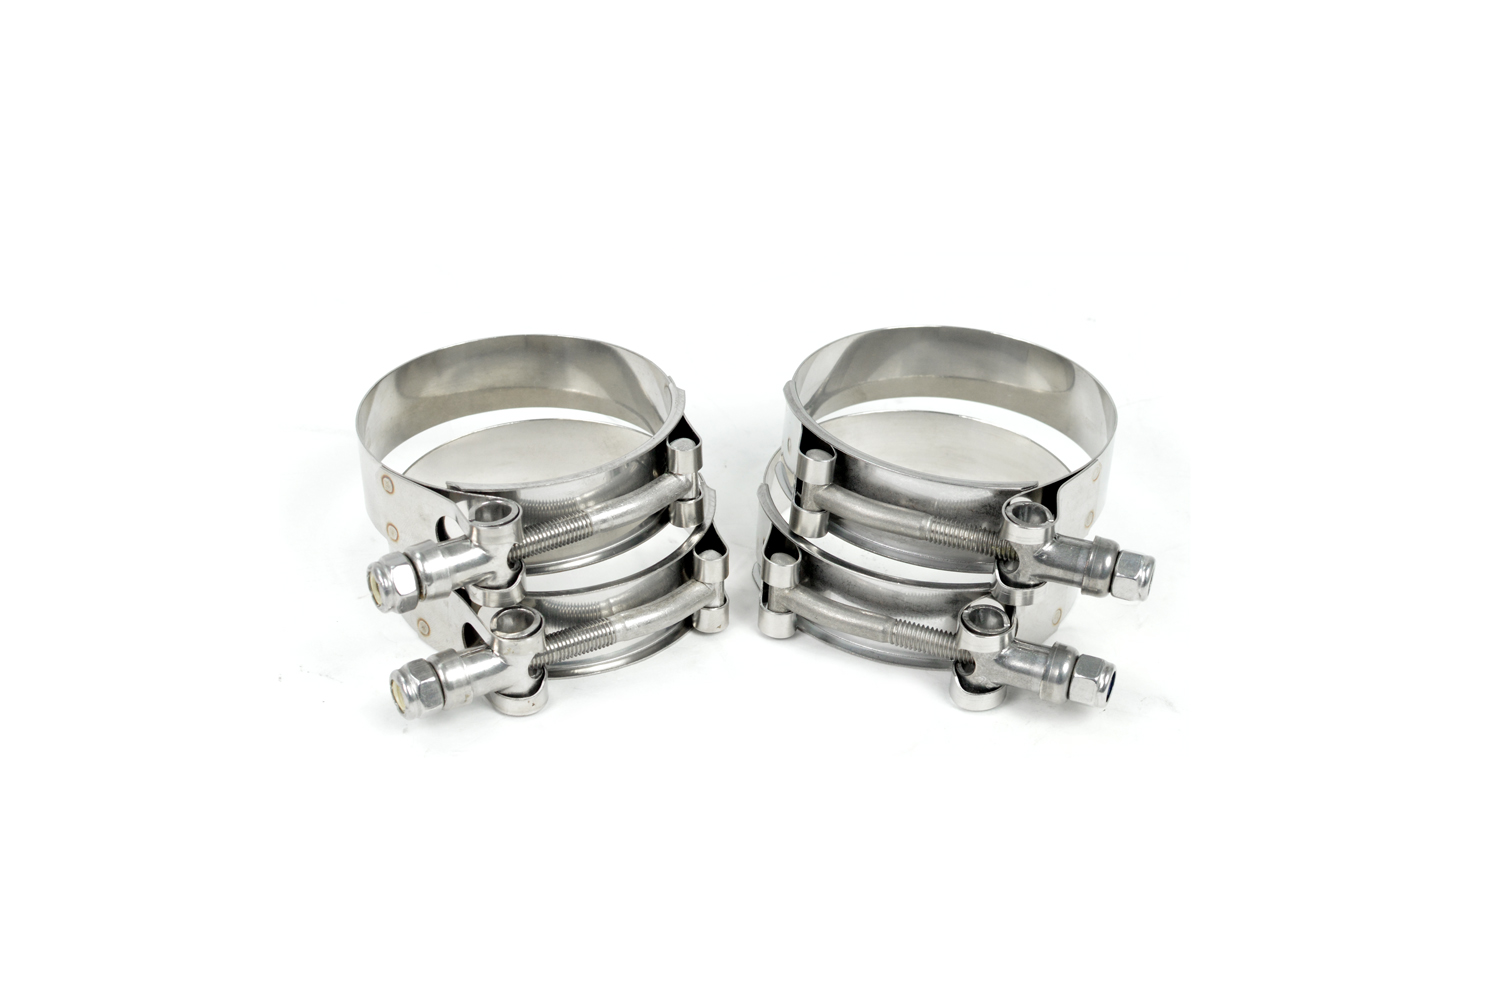 Stainless steel T-bolt clamps included with every kit